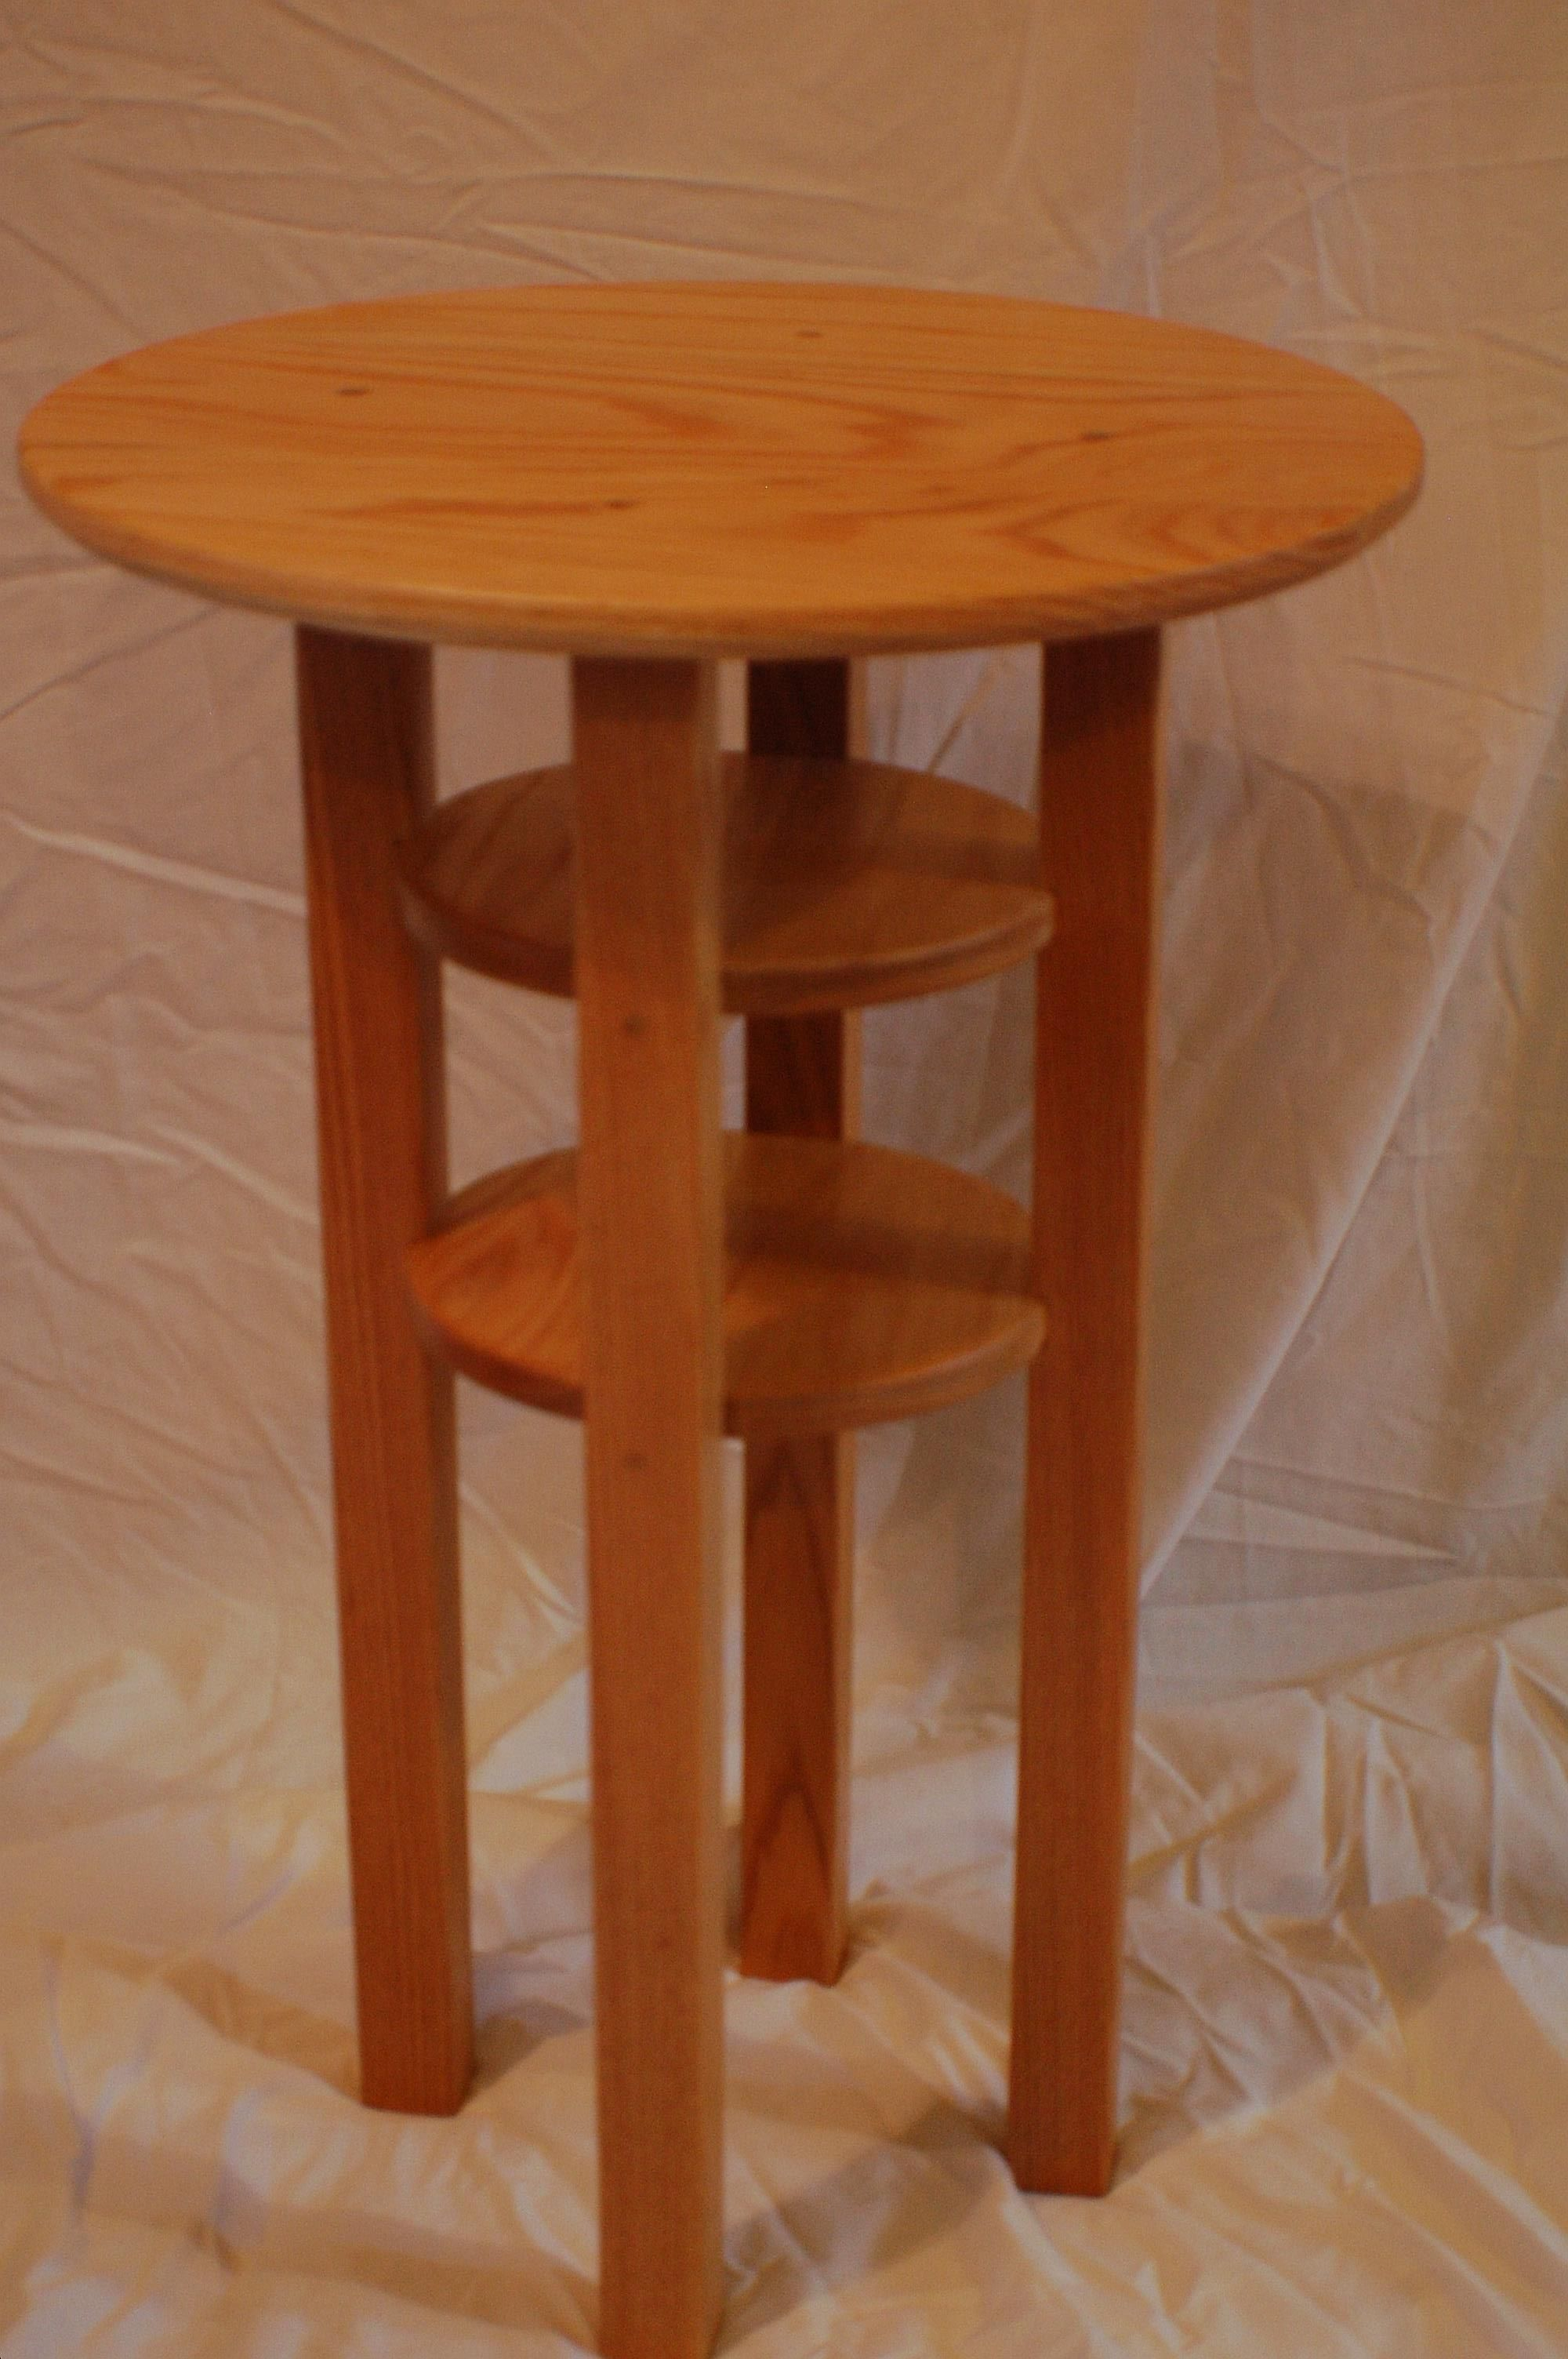 Round Oak End Tables Buy A Handmade Round Oak Side Table Made To Order From